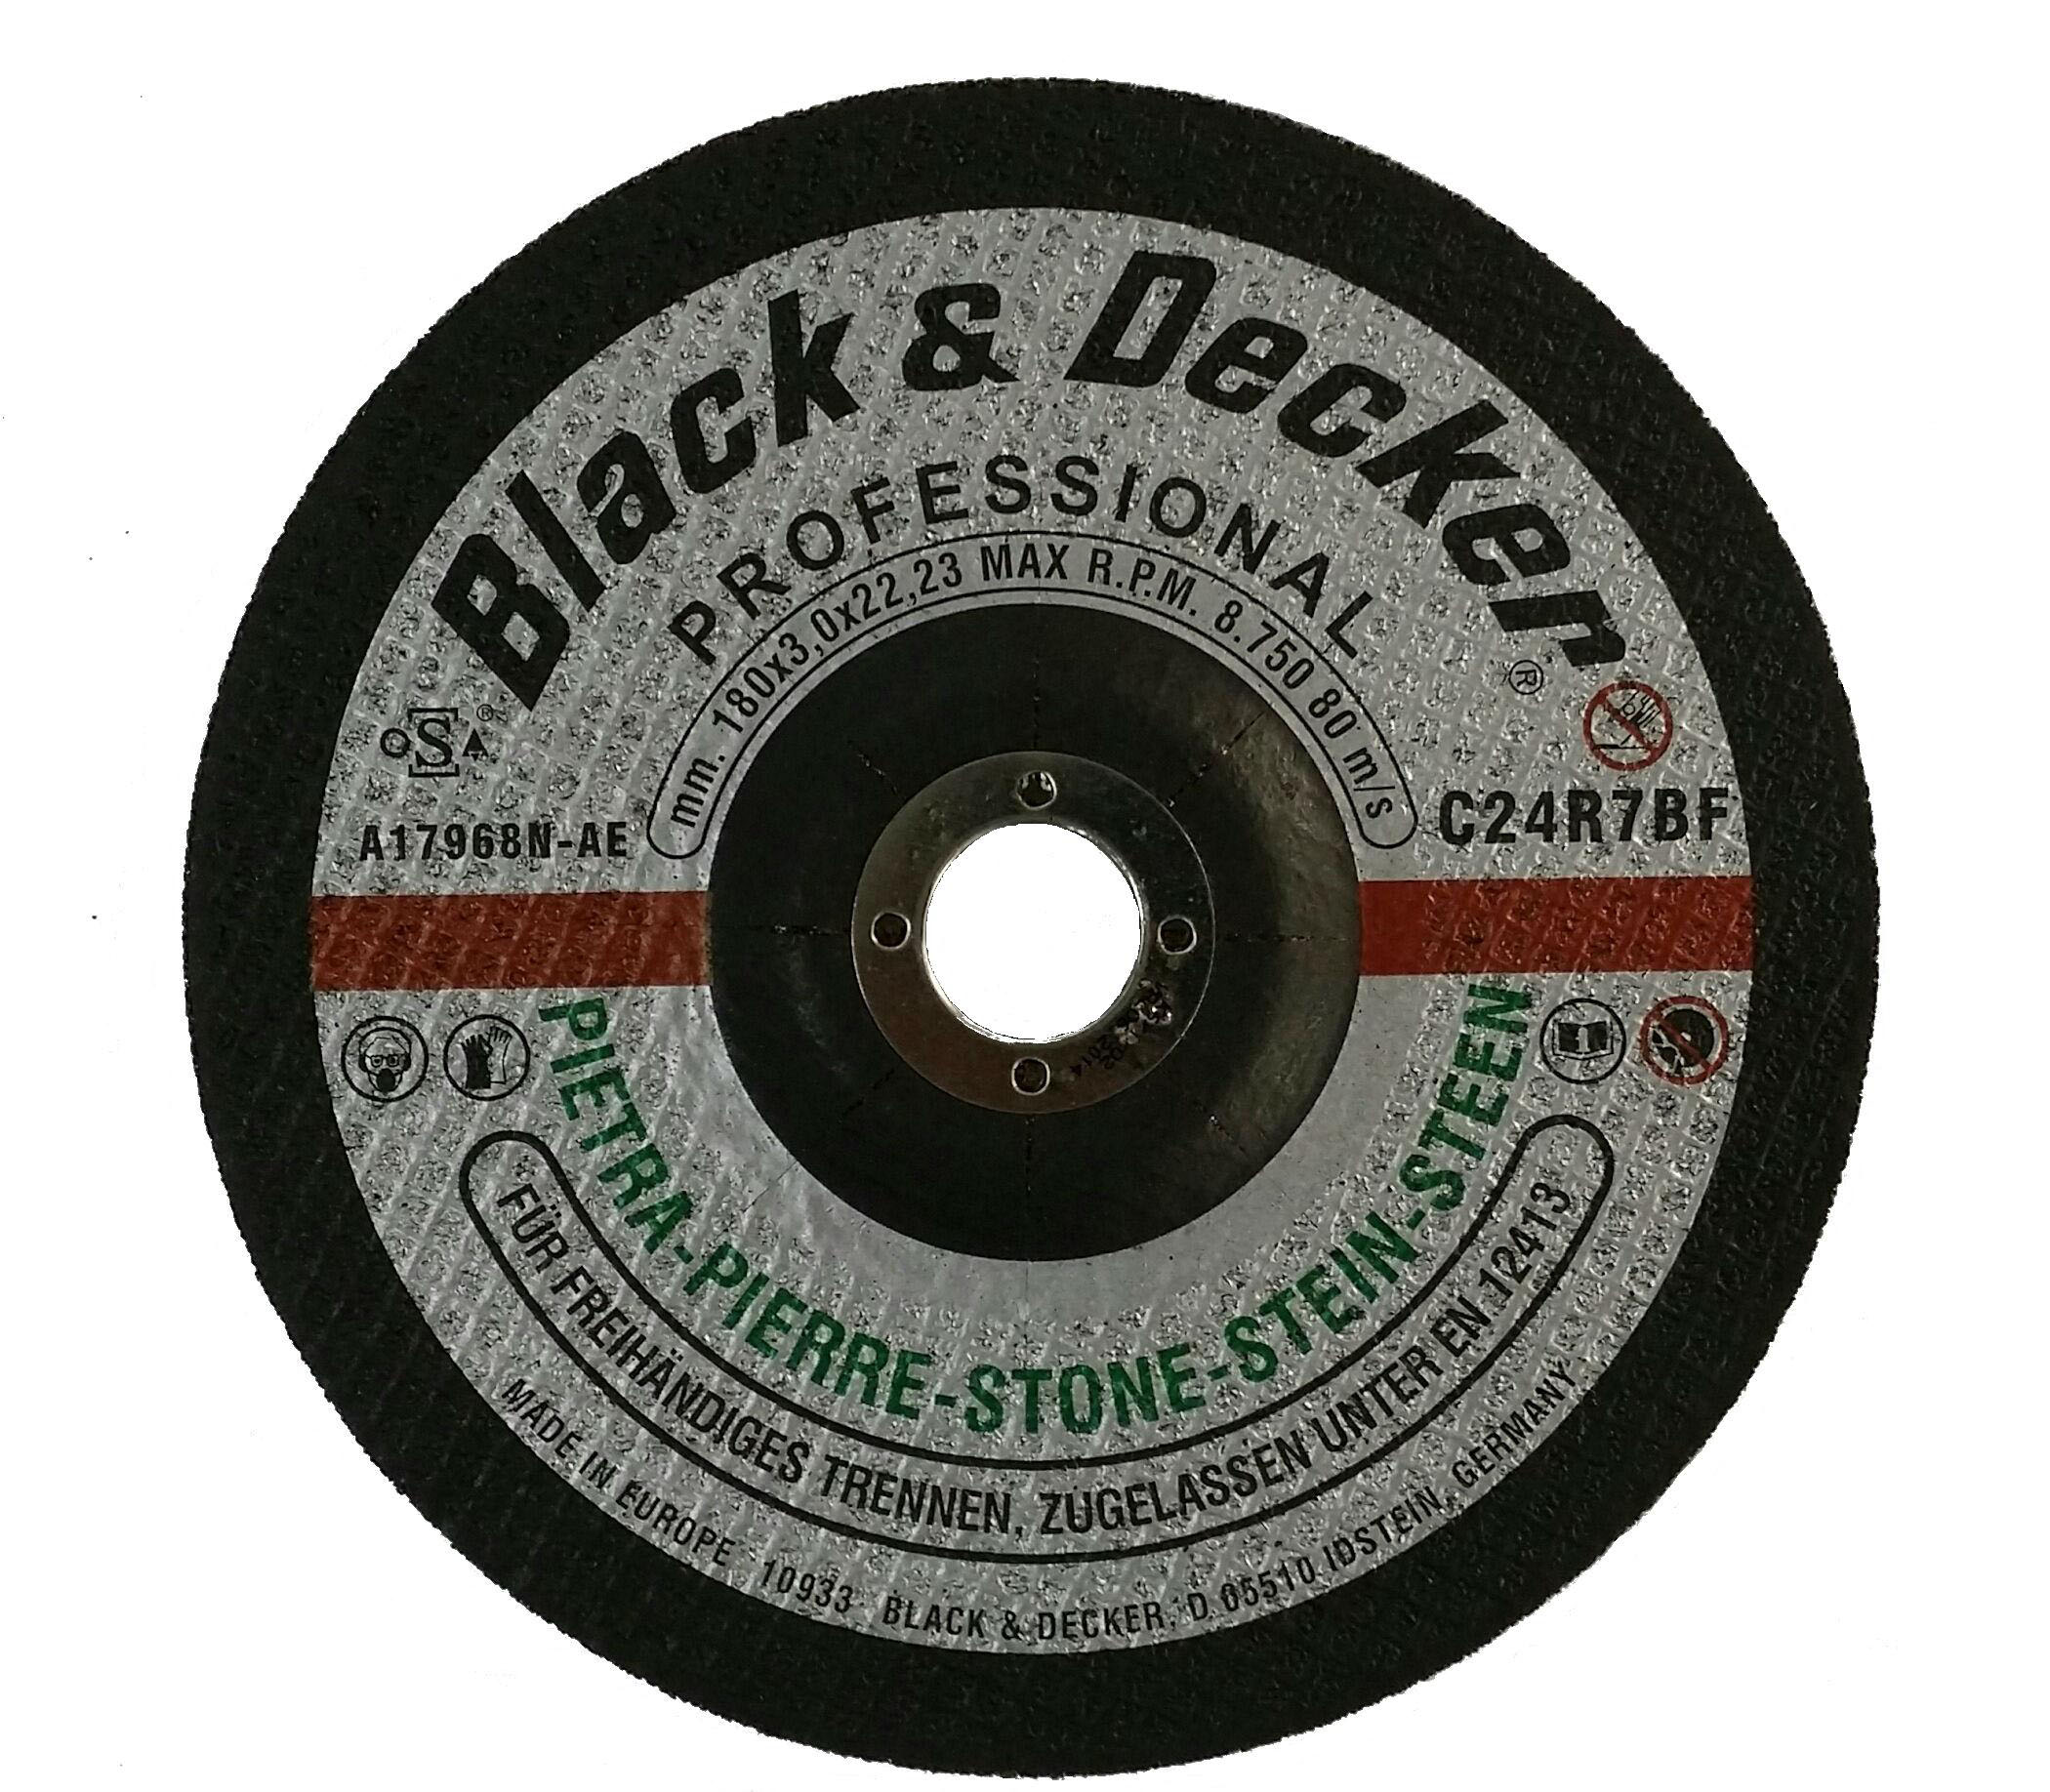 Black & Decker A17988N-AE - 9-inch Stone Cutting Disc